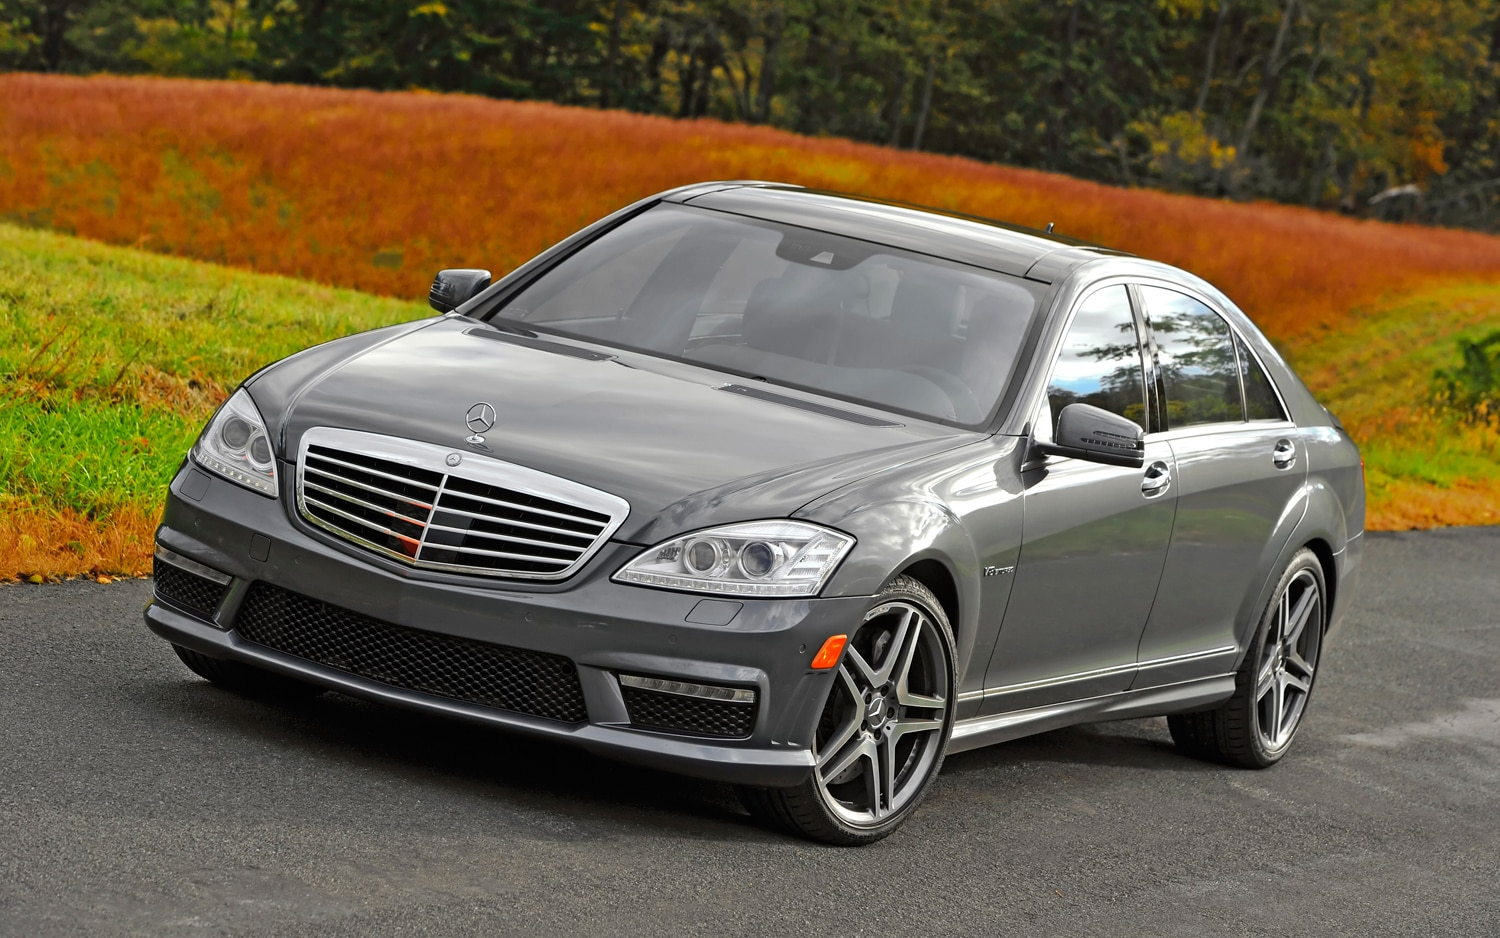 2012 mercedes-benz s63 amg - editors' notebook - automobile magazine